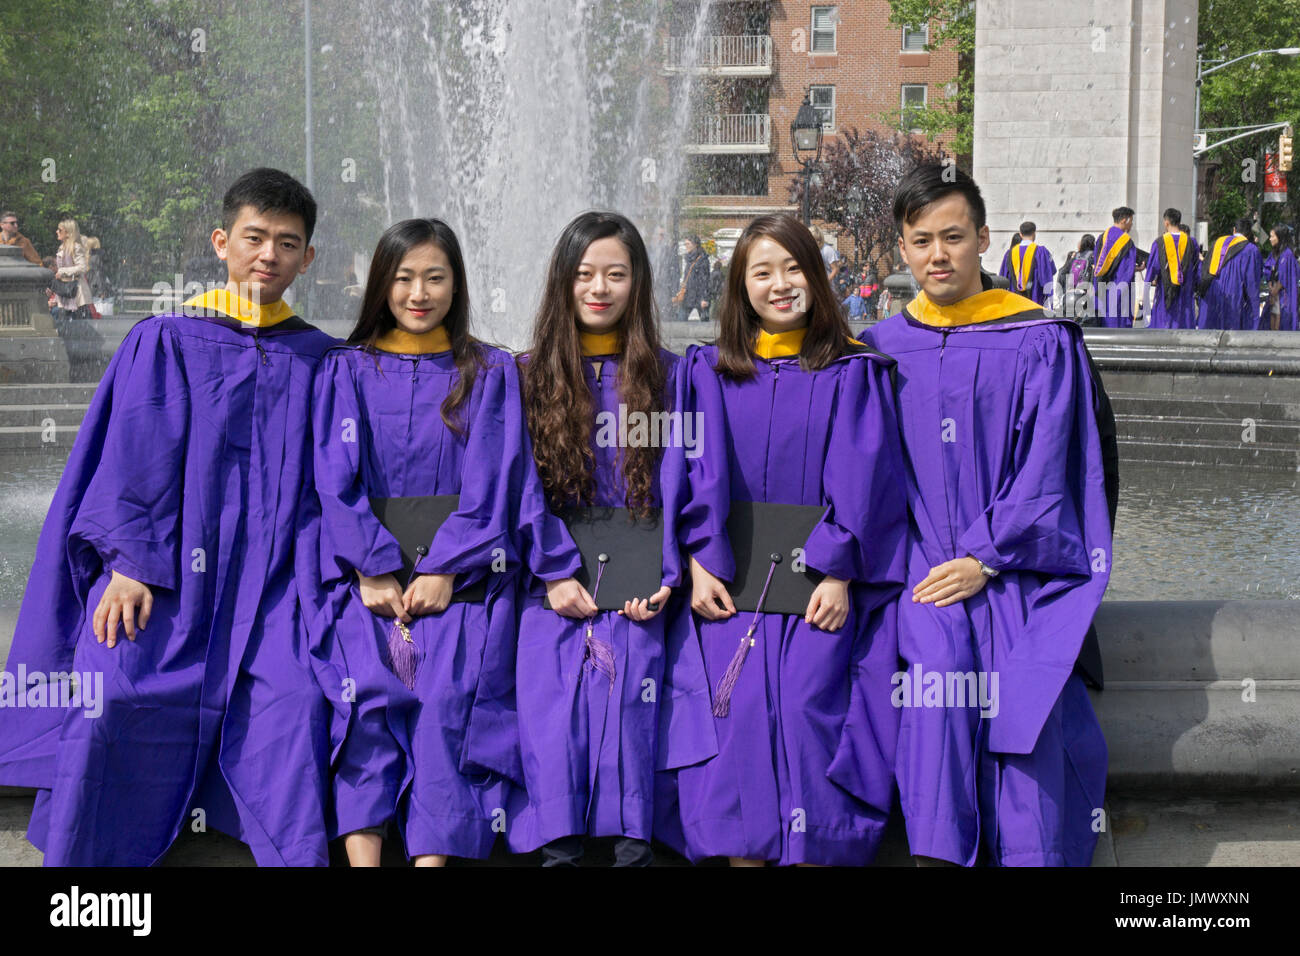 A group of Chinese students at NYU celebrating their graduation in Washington Square Park in Greenwich Village, Manhattan, New York City - Stock Image